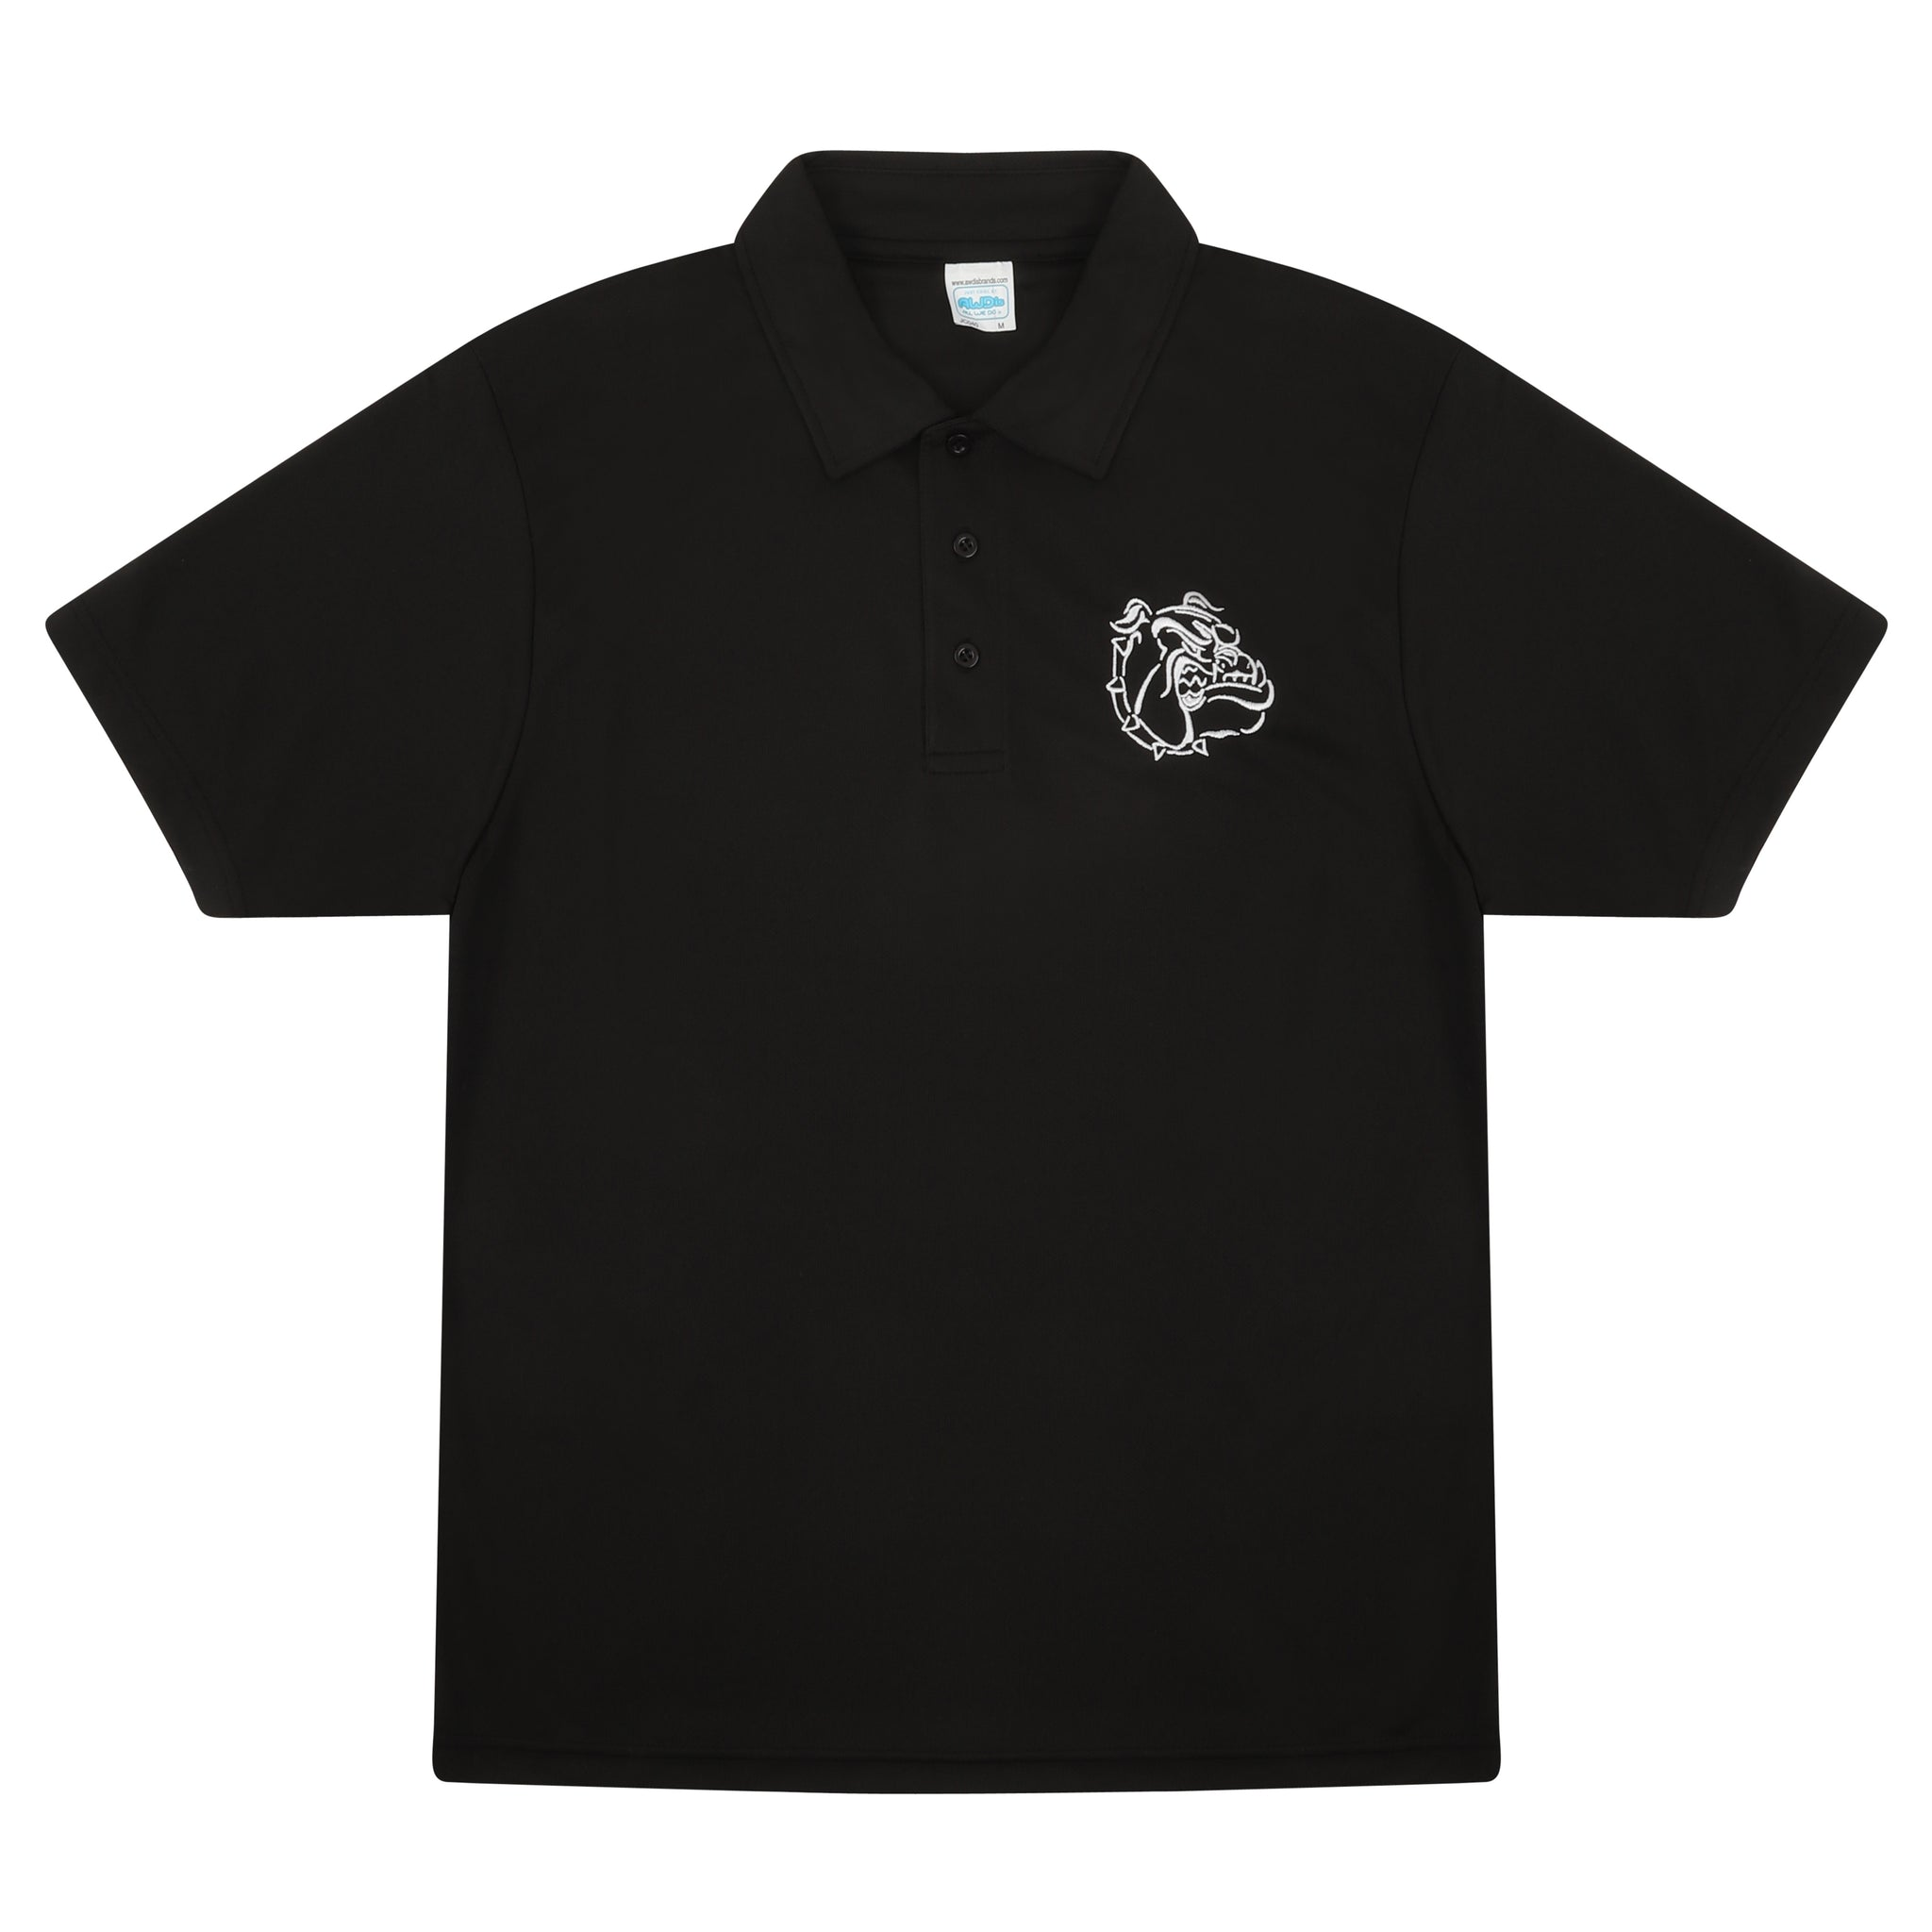 Bury St Edmund's Bulldogs Polo